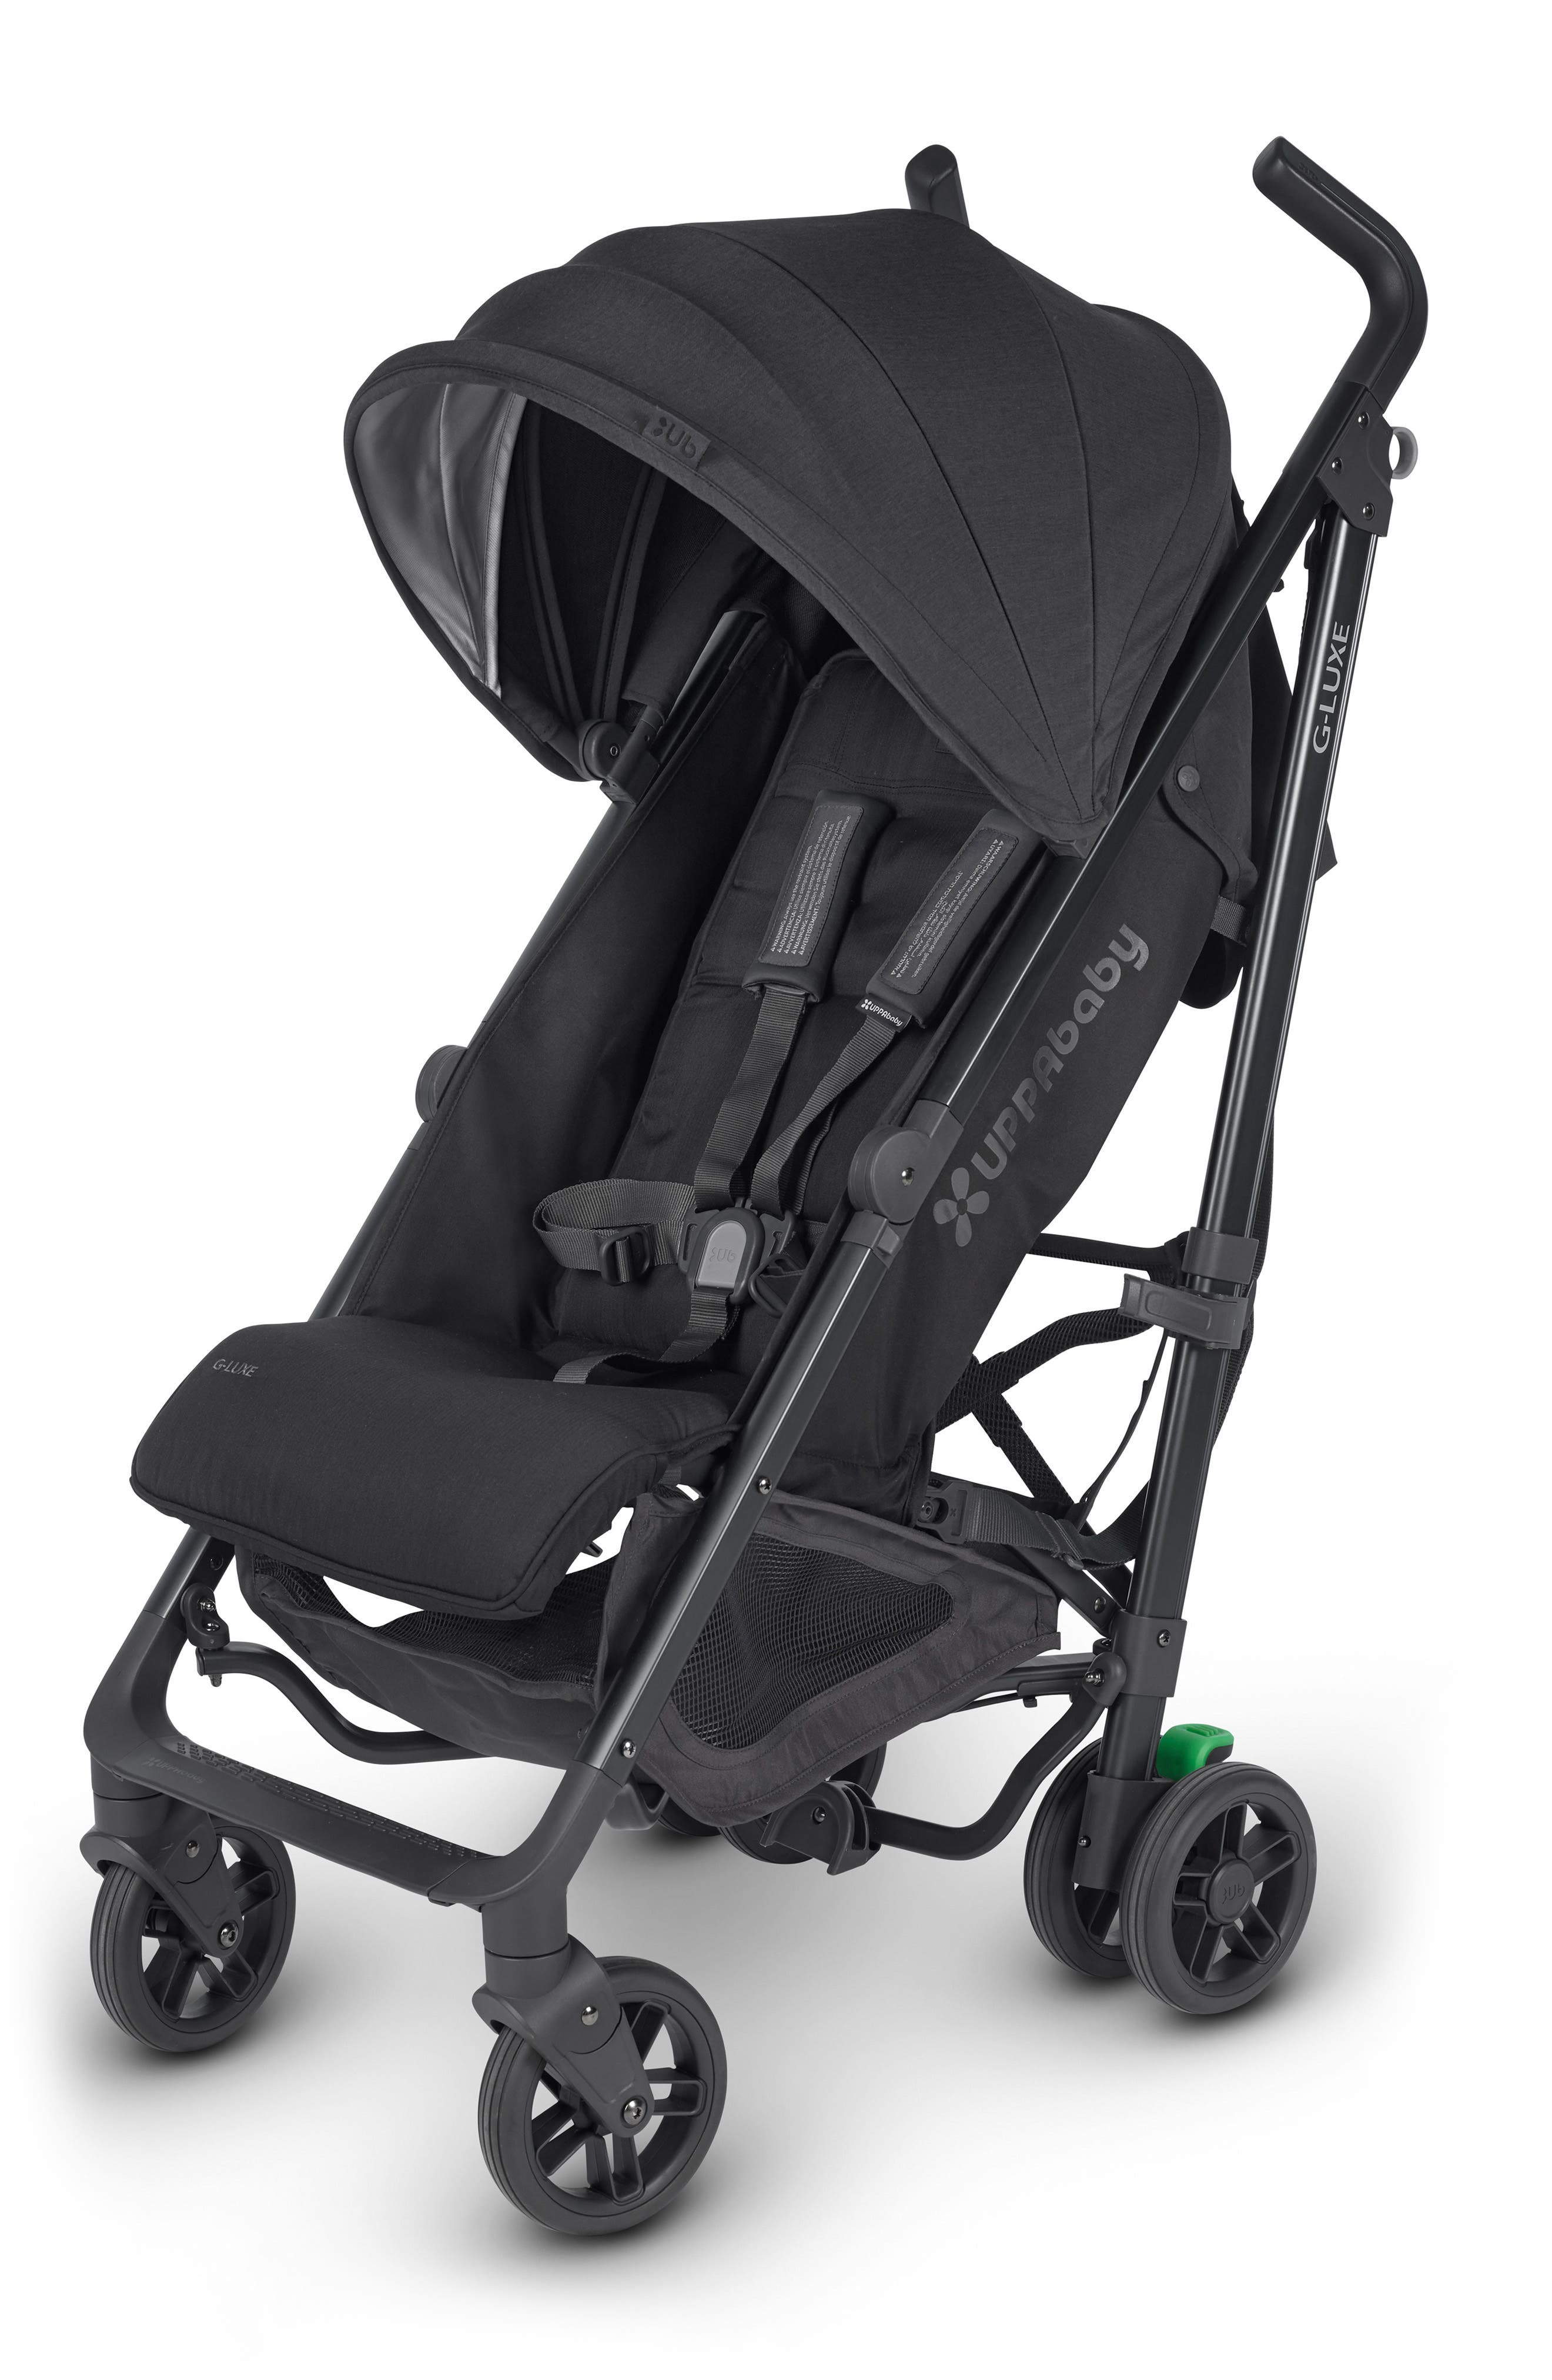 G-LUXE 2018 Reclining Umbrella Stroller,                             Main thumbnail 1, color,                             JAKE BLACK/ CARBON